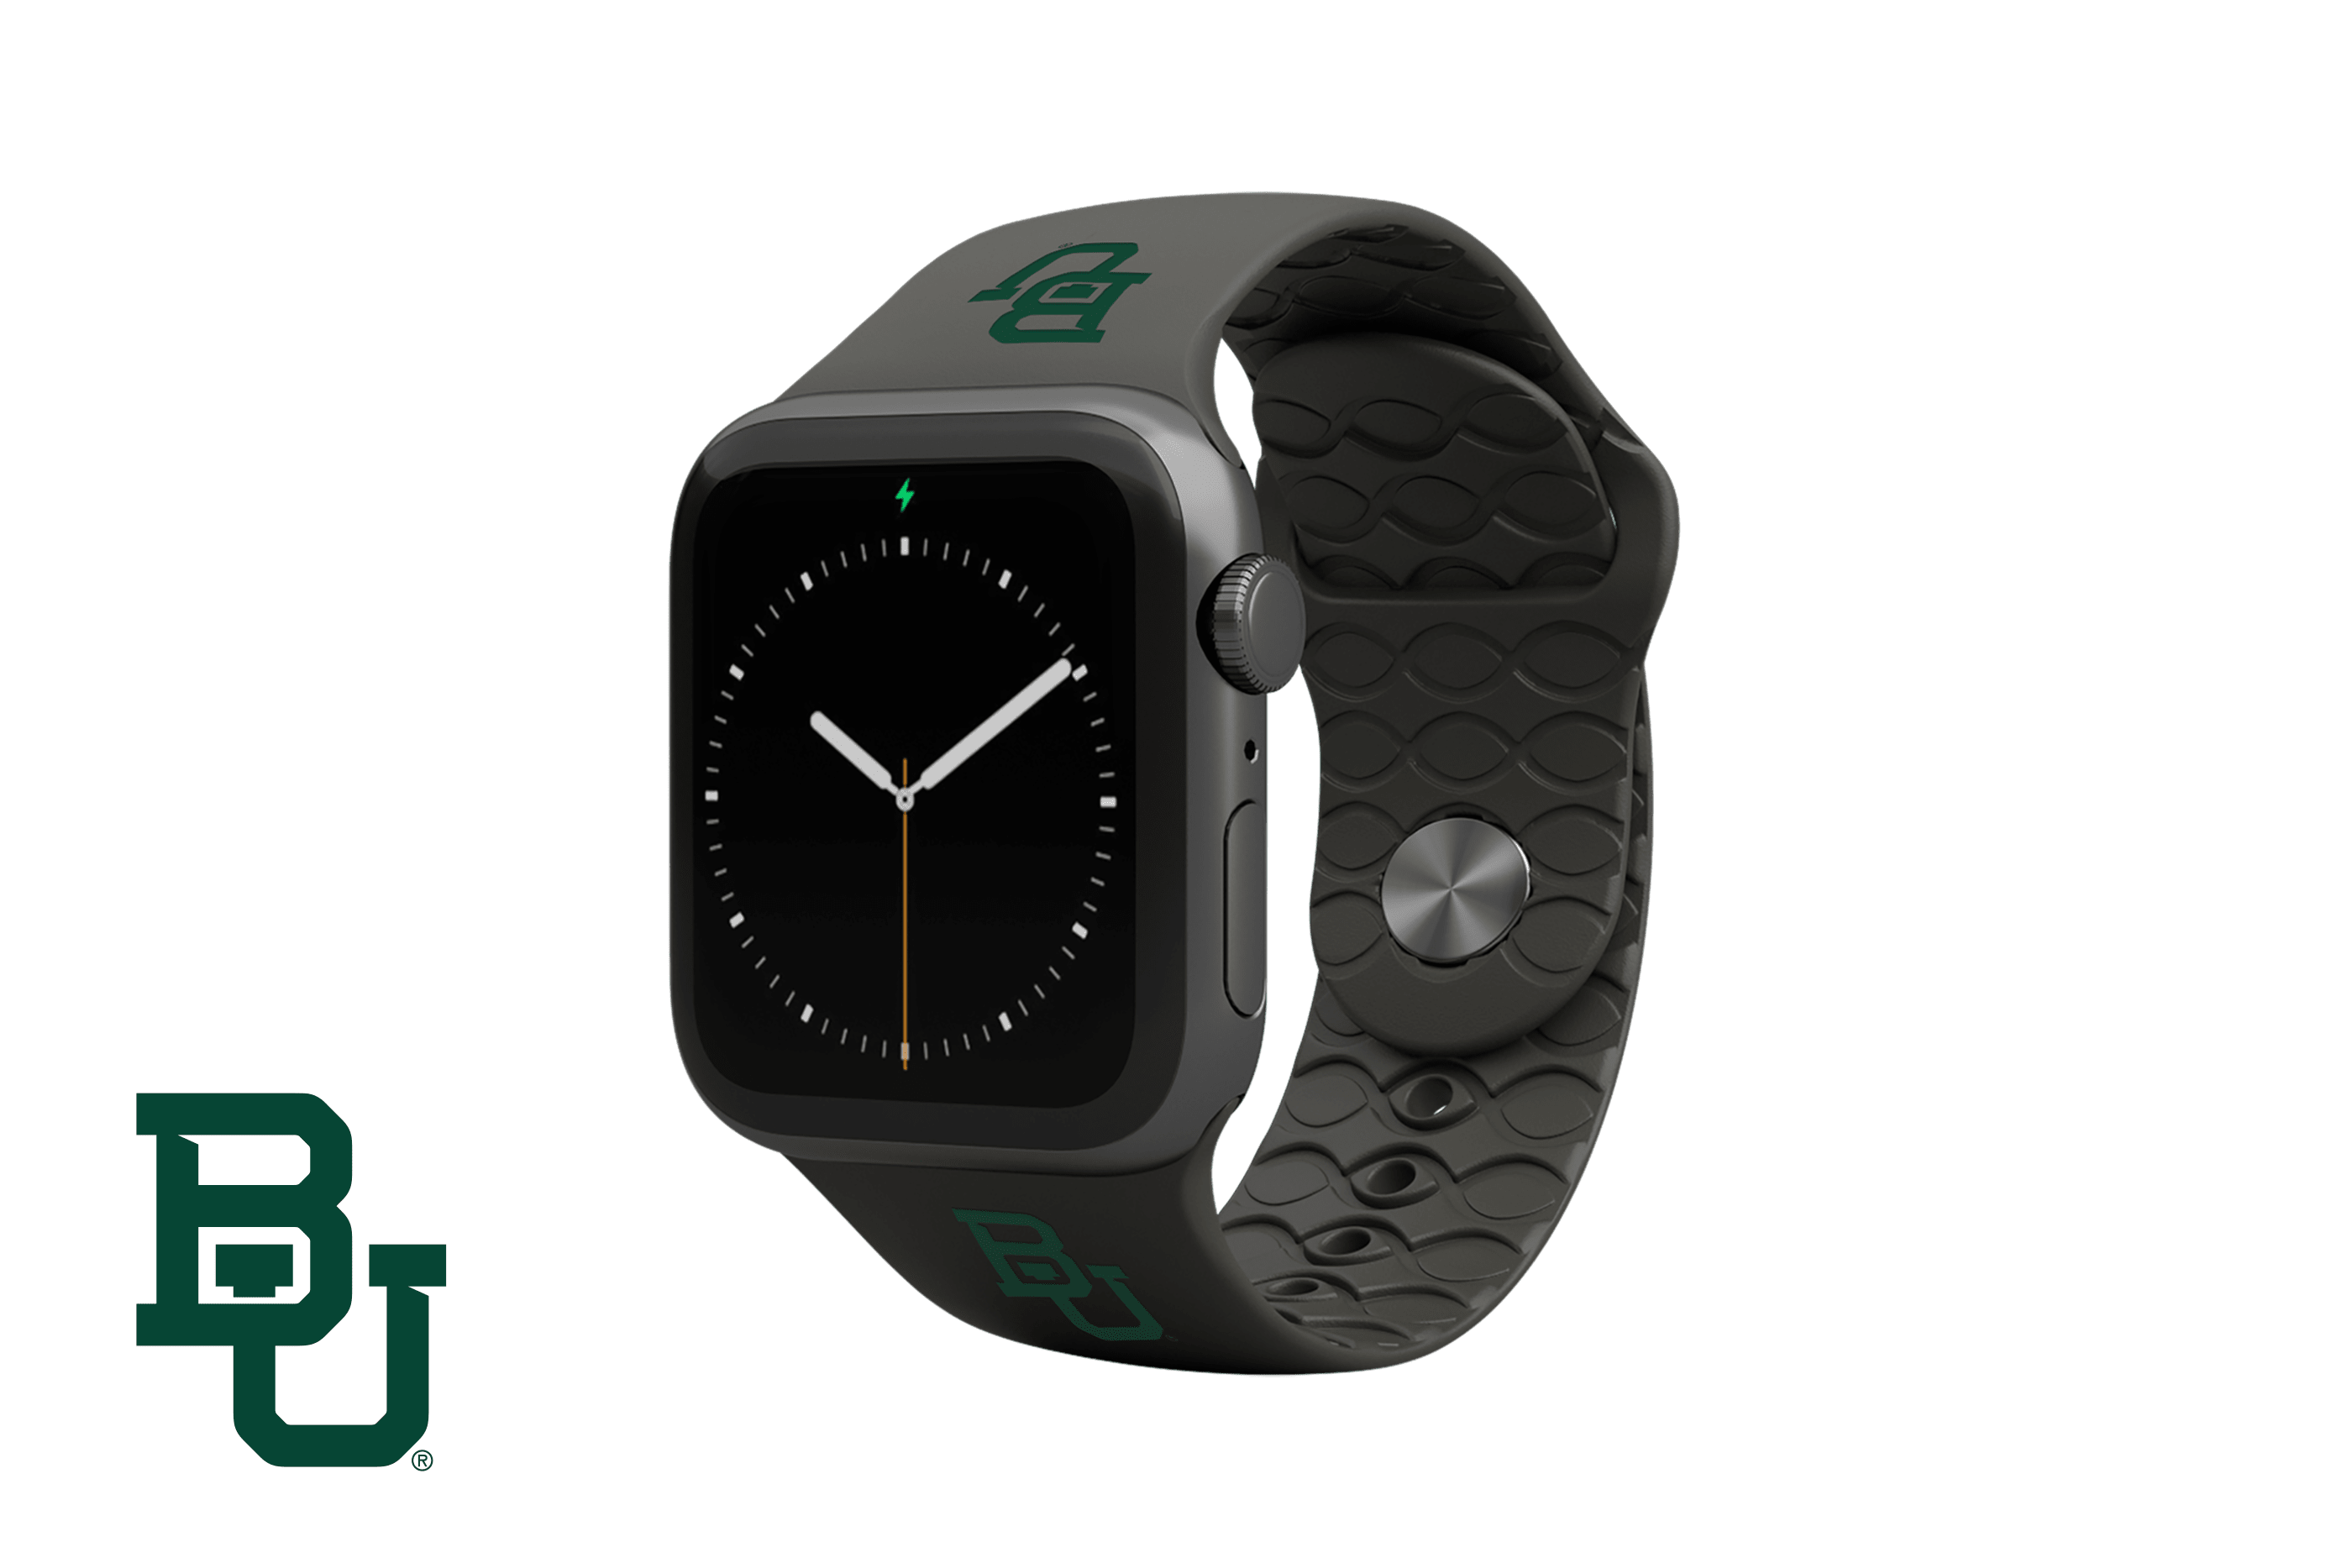 Apple Watch Band College Baylor Black with gray hardware viewed front on